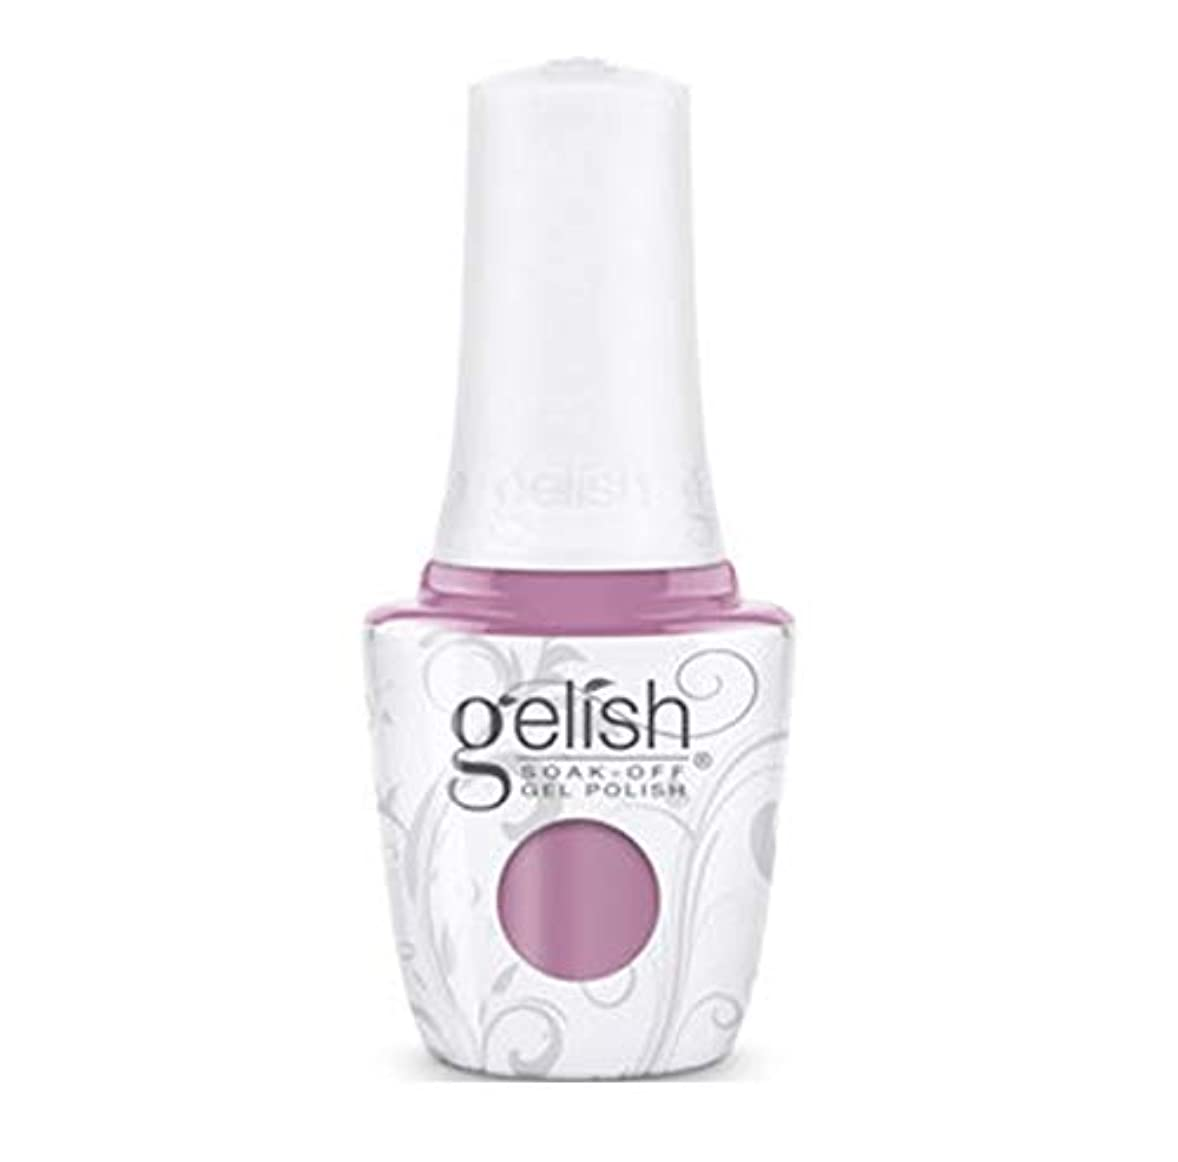 つかまえるほのかおとなしいHarmony Gelish - The Color of Petals - Merci Bouquet - 15 mL / 0.5 oz